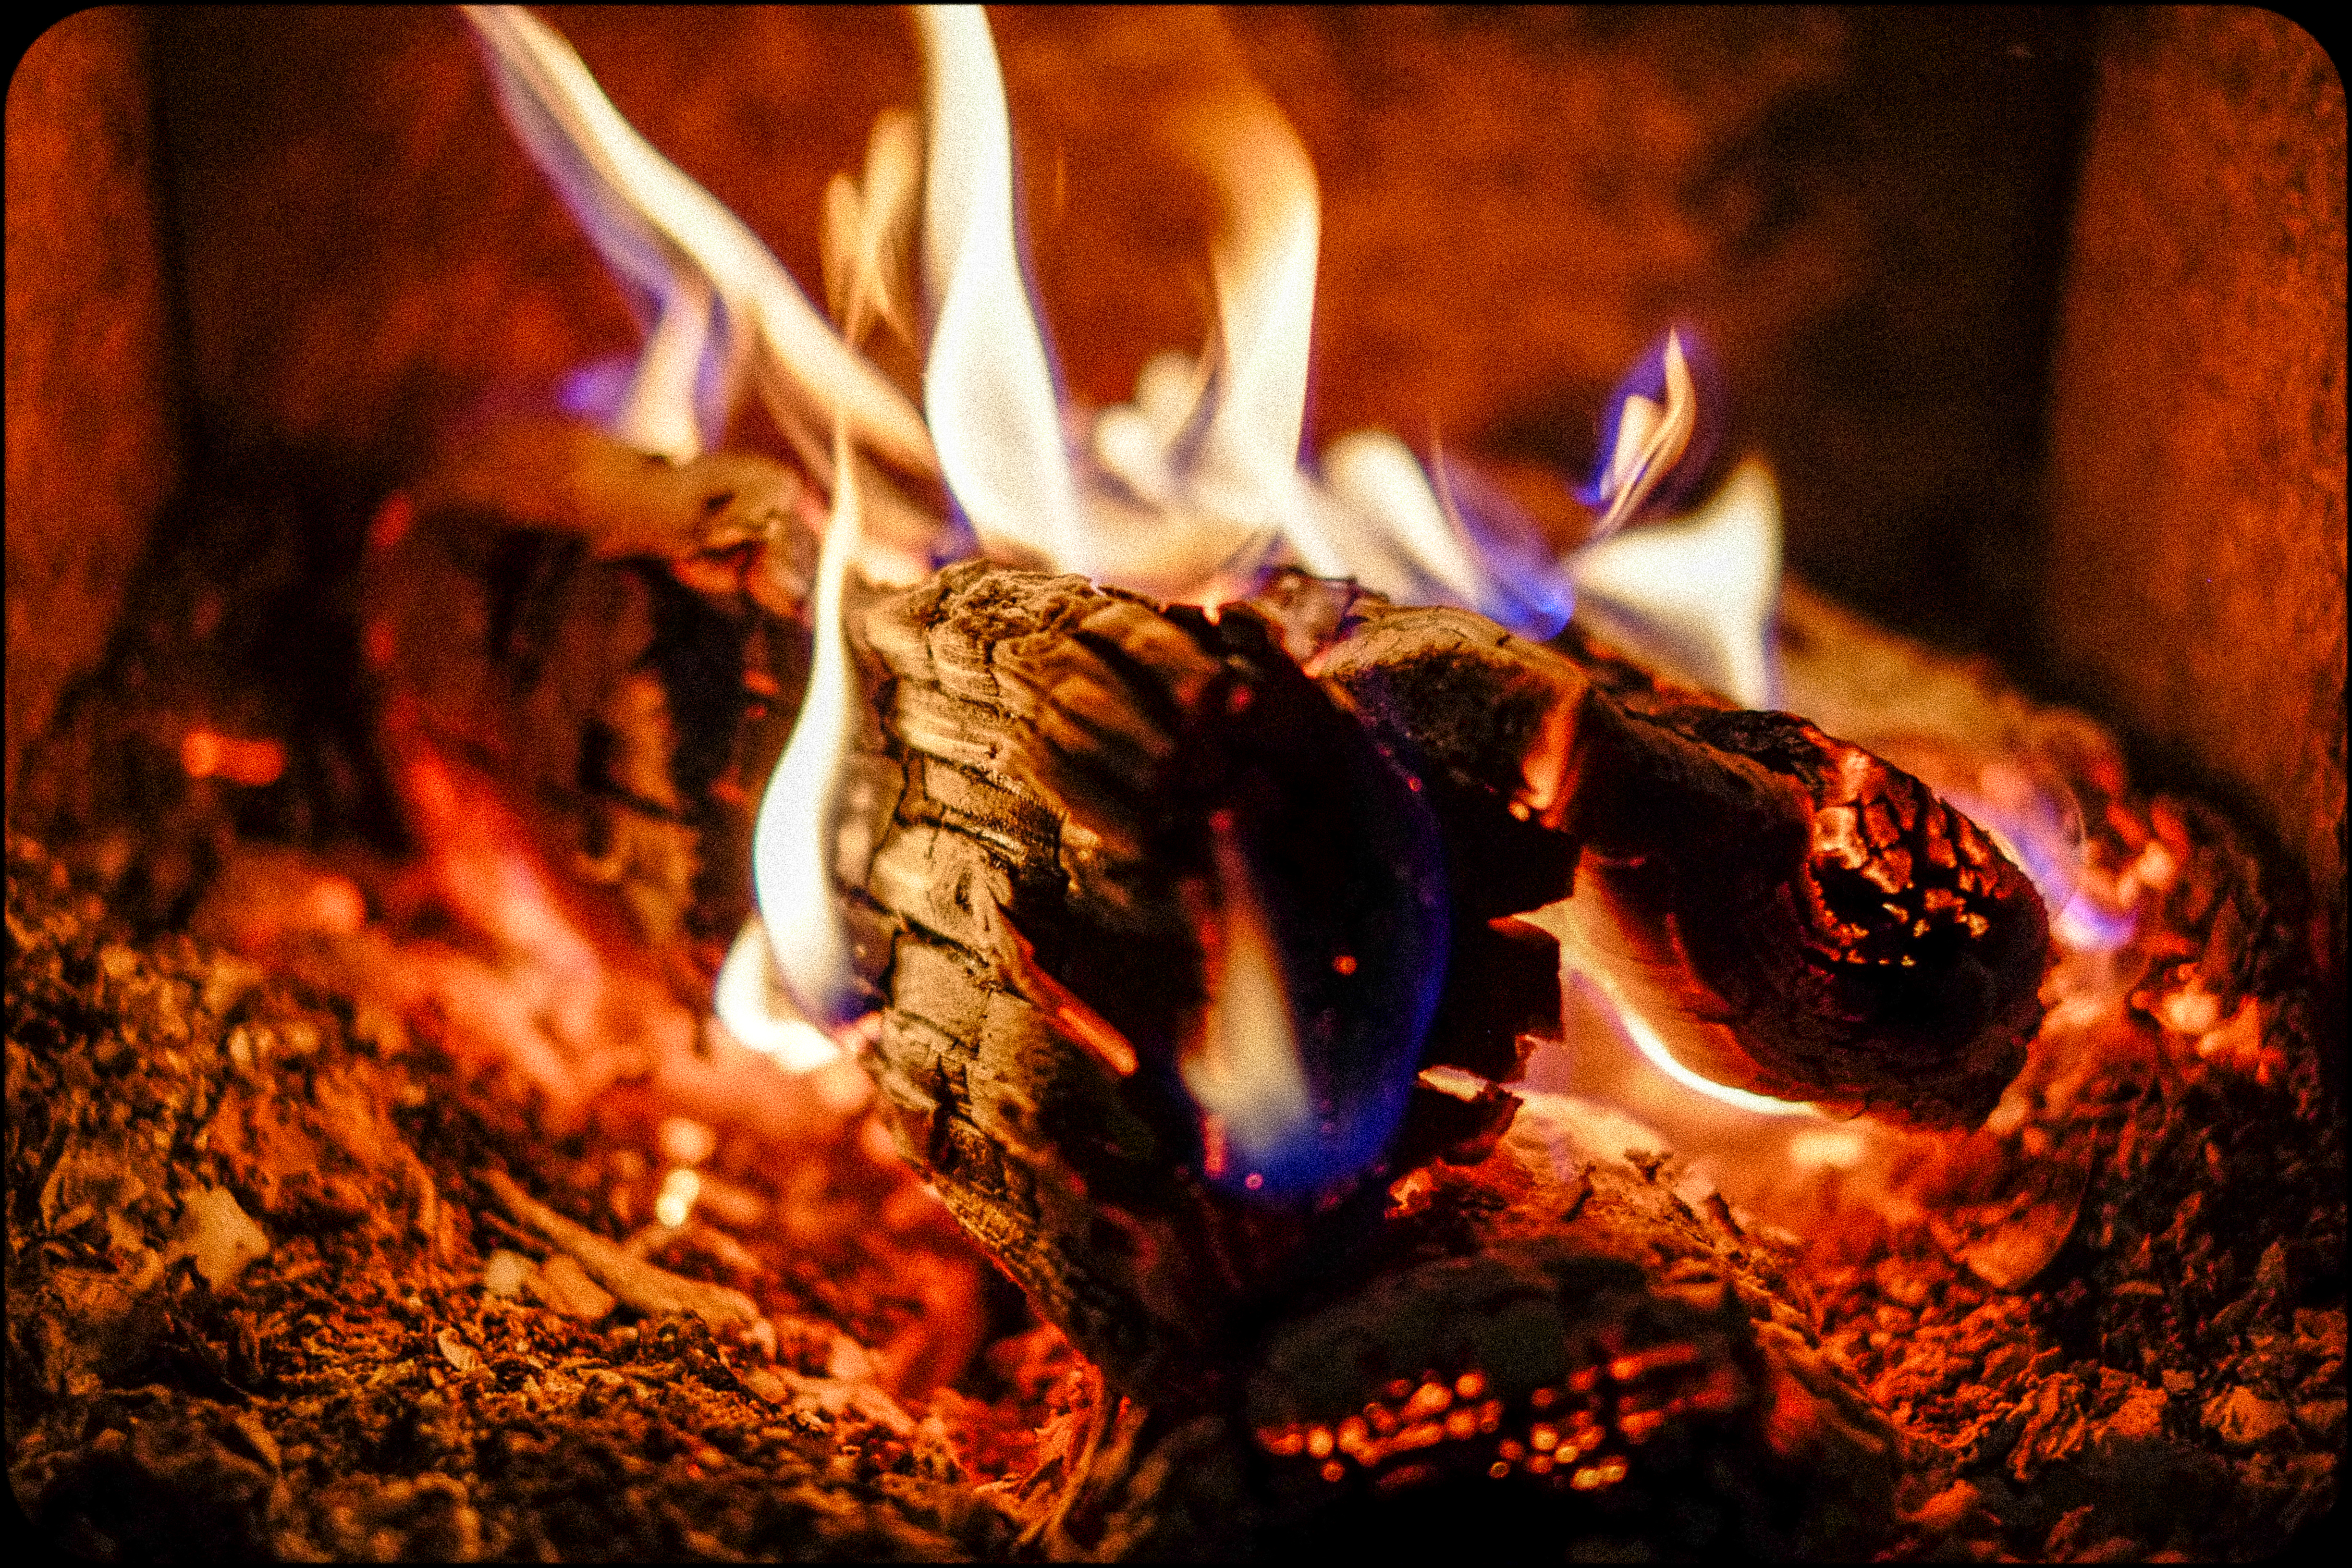 126789 Screensavers and Wallpapers Bonfire for phone. Download Bonfire, Coals, Flame, Miscellanea, Miscellaneous, Firewood, Ash pictures for free